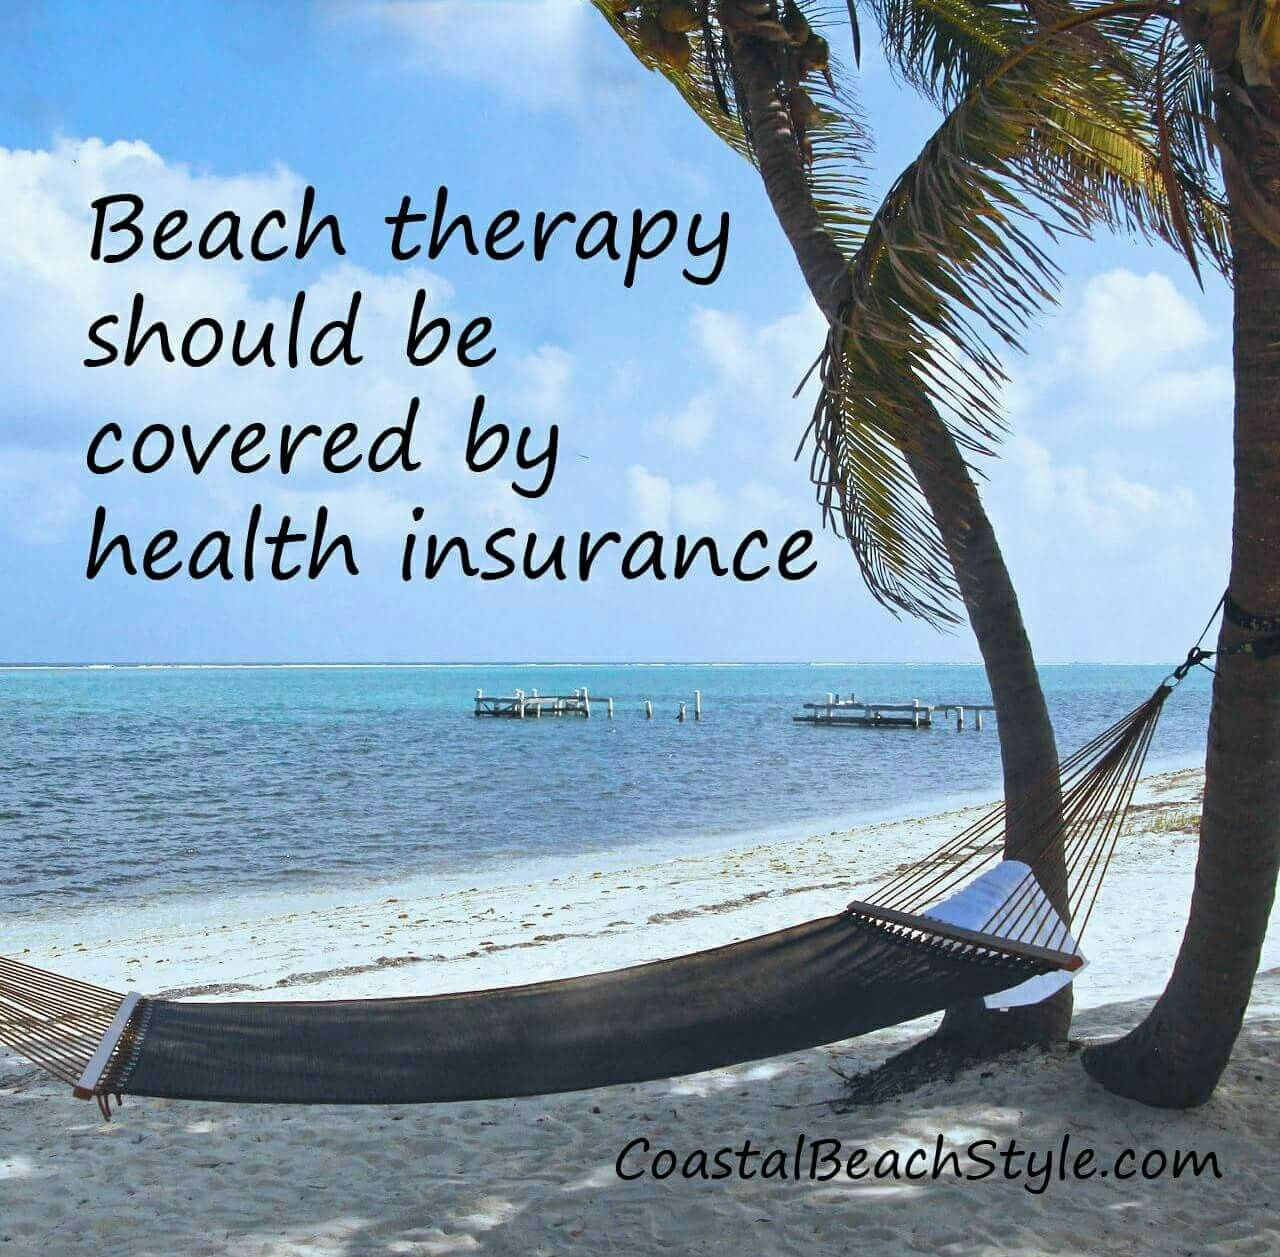 Beach therapy should be covered by health insurance of